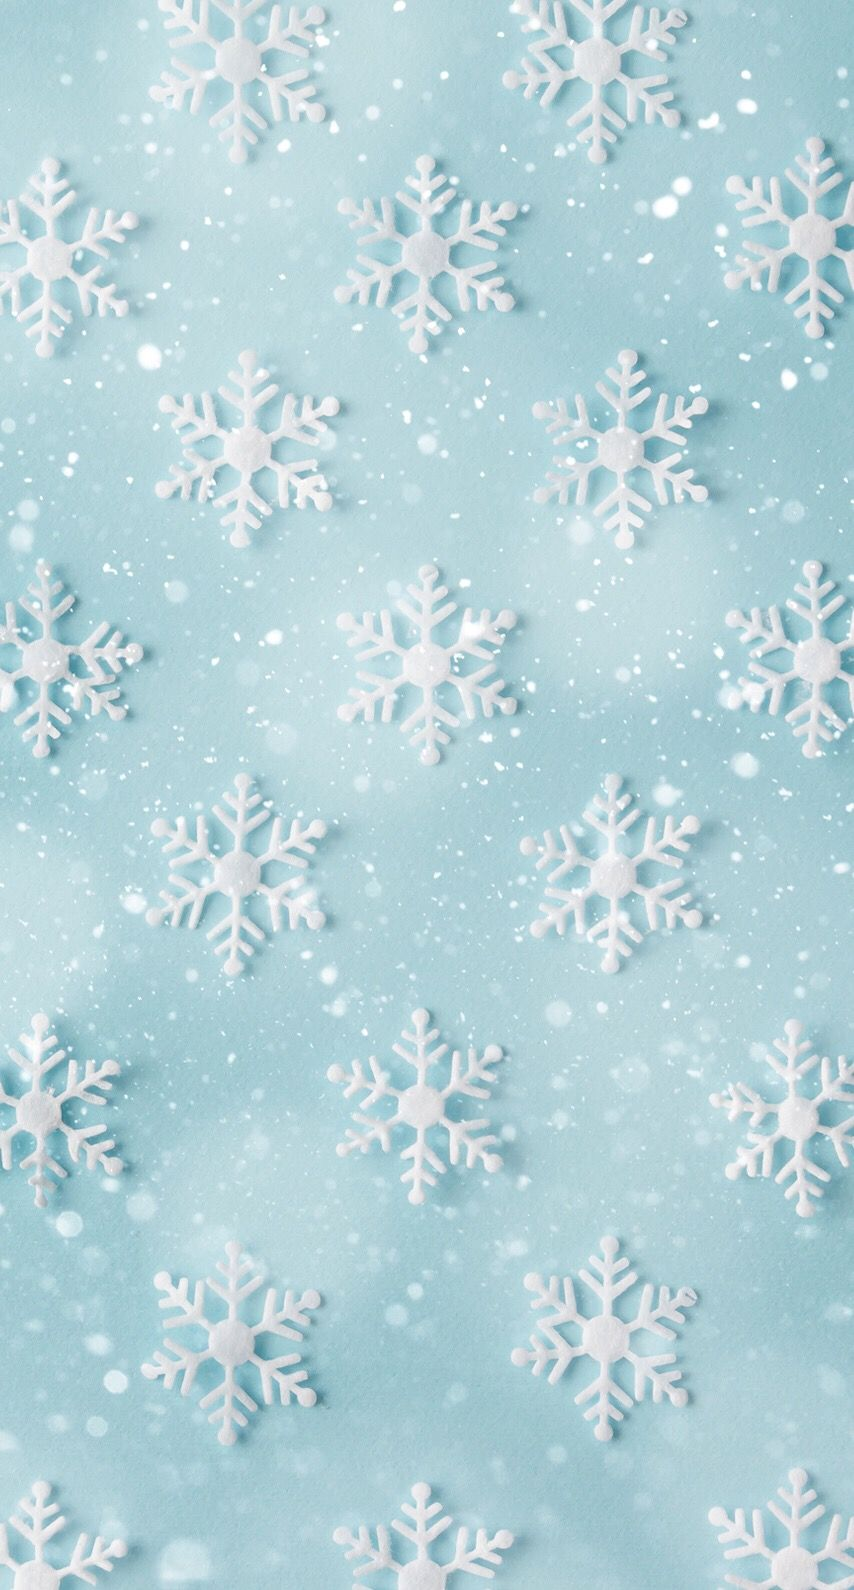 Pin by Ange bleu on Wallpapers | Iphone wallpaper winter, Xmas